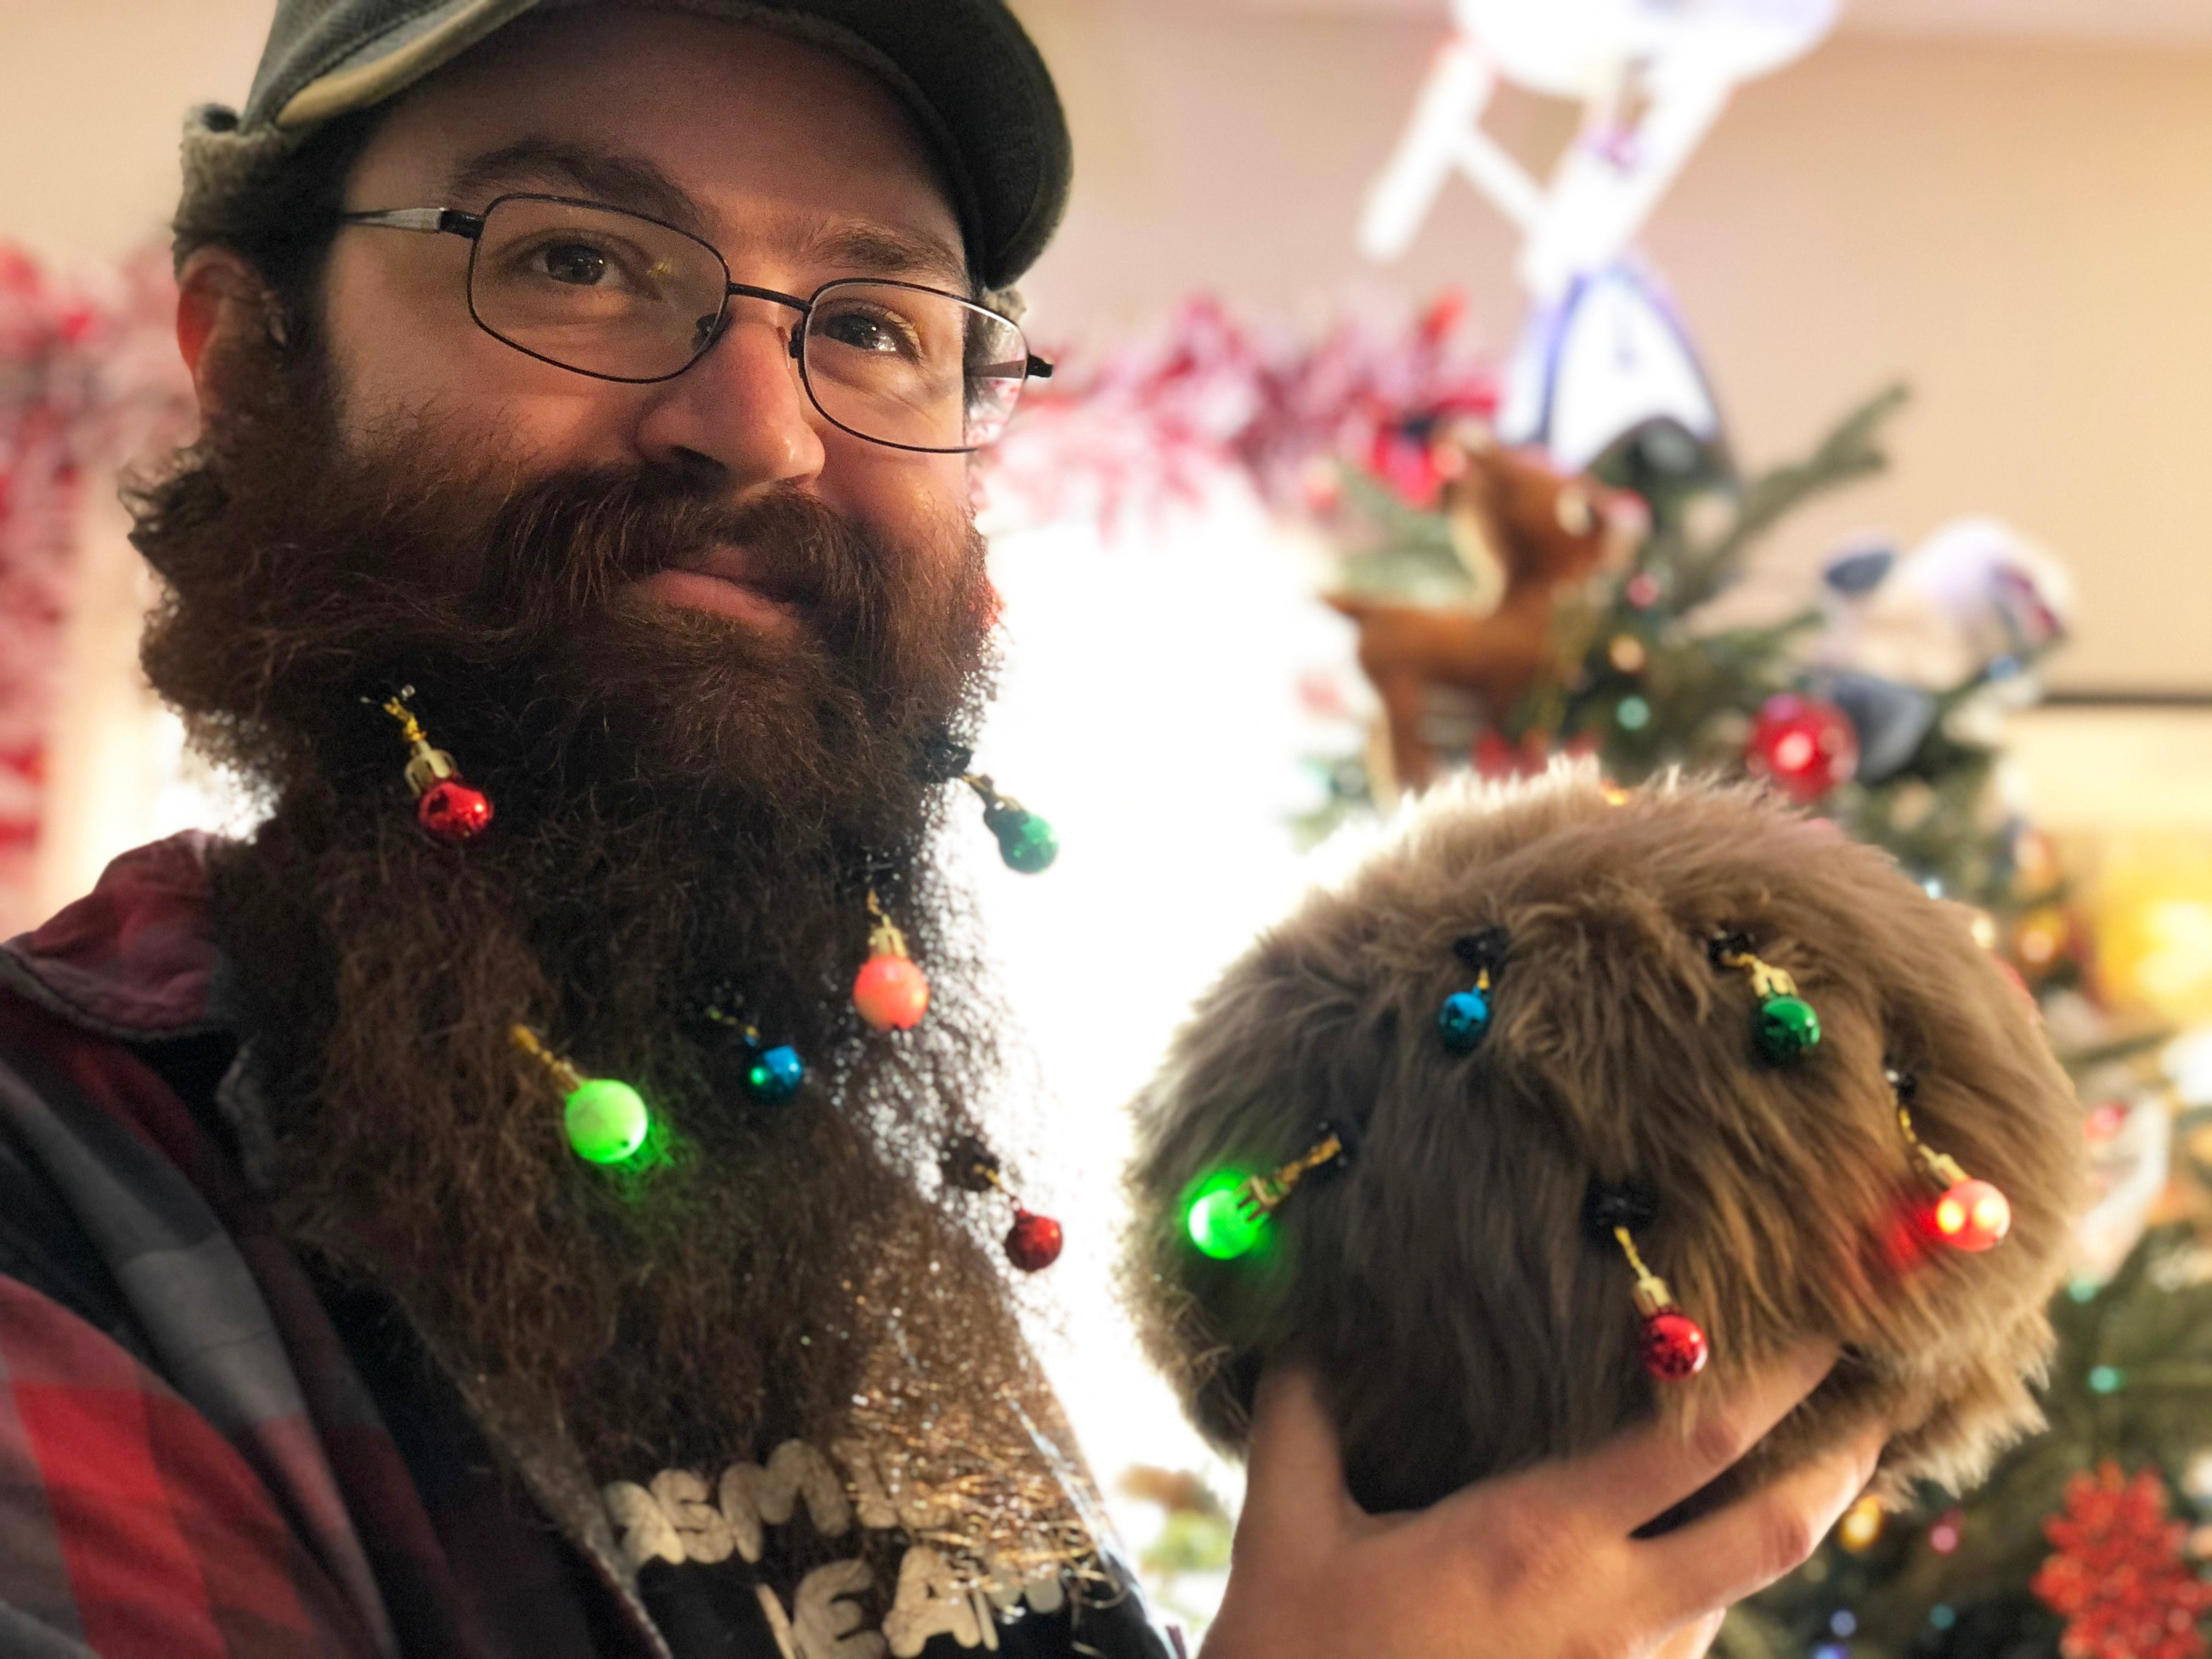 Jay and a Star Trek App-enabled Tribble with beard bobbles in their beard and fur - Science Division